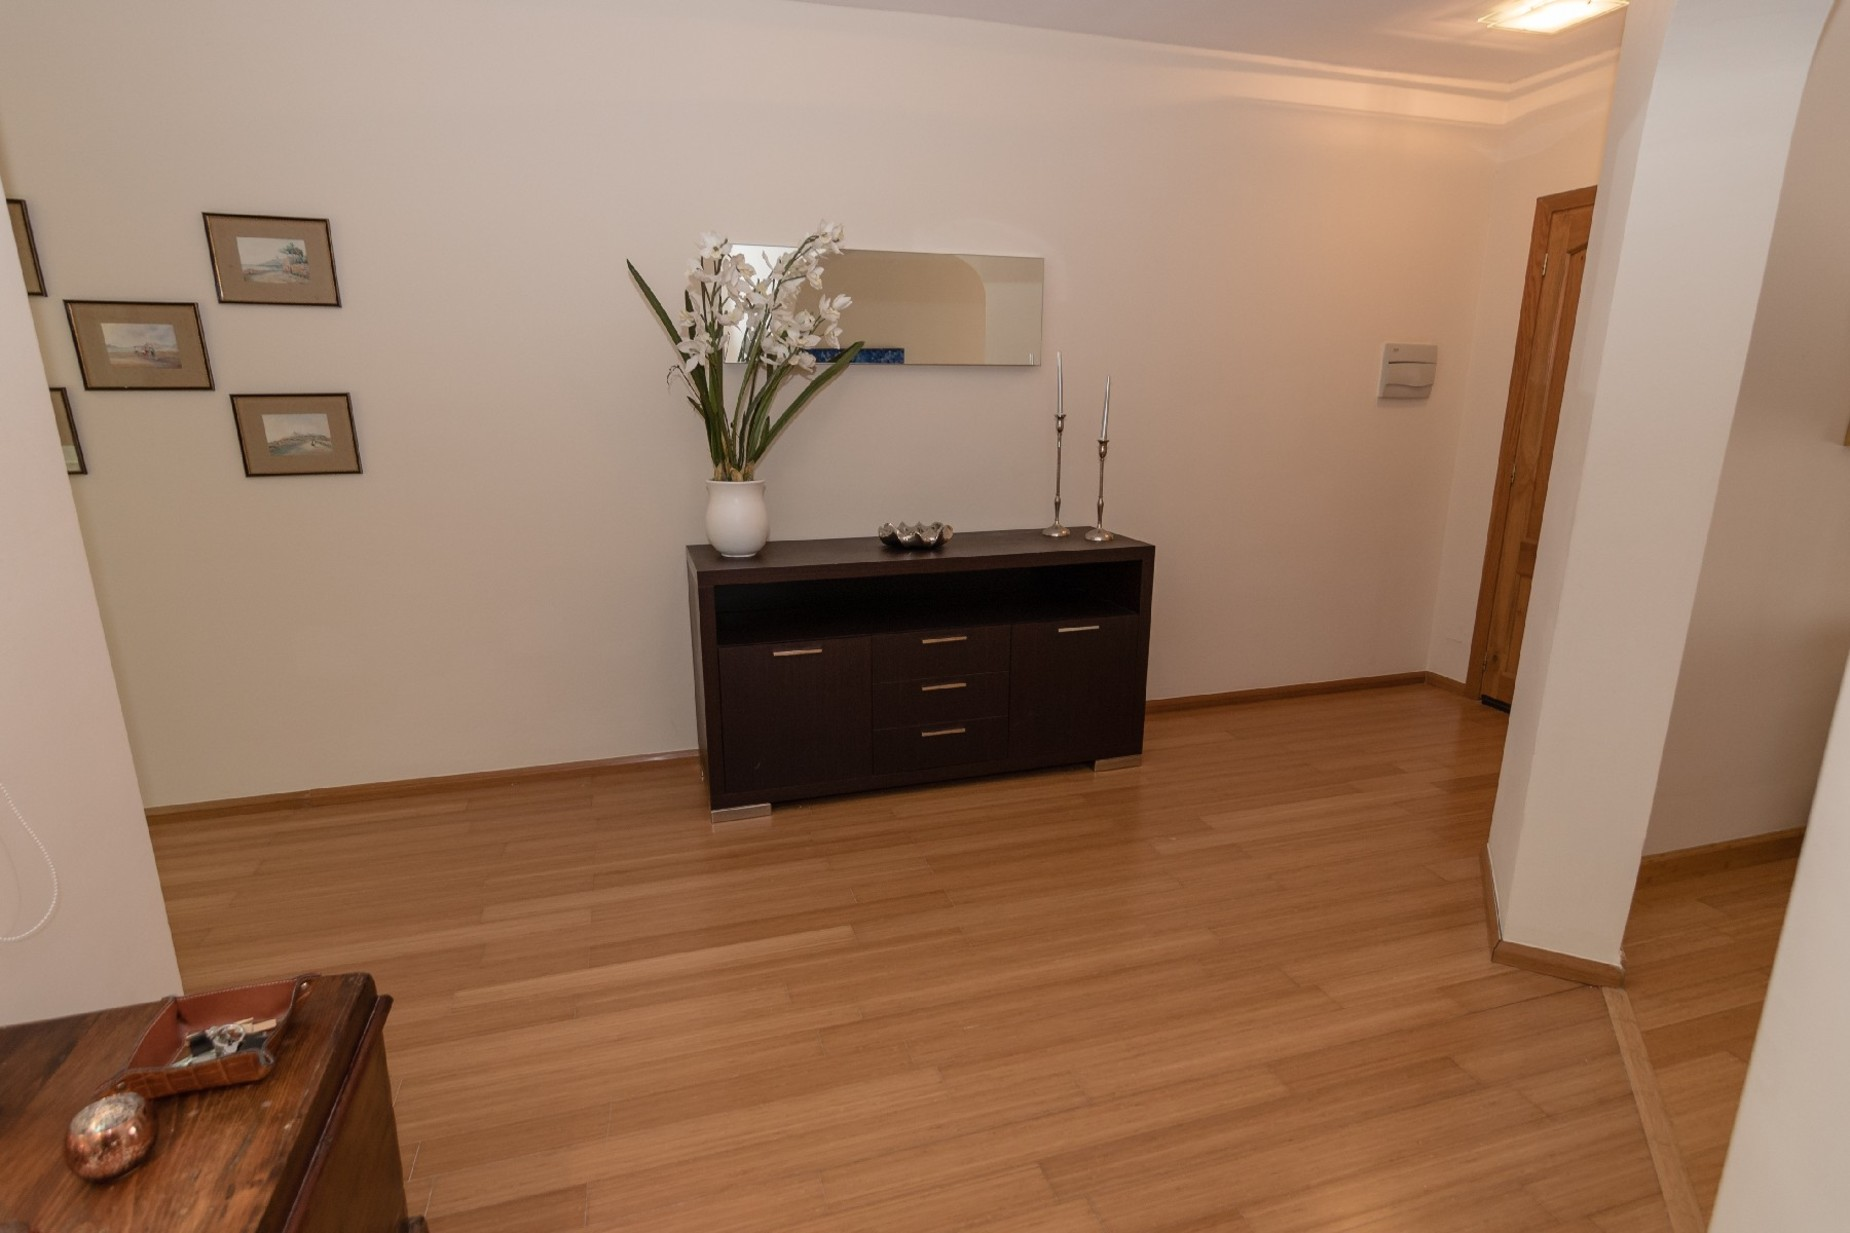 3 bed Apartment For Rent in Swieqi, Swieqi - thumb 10